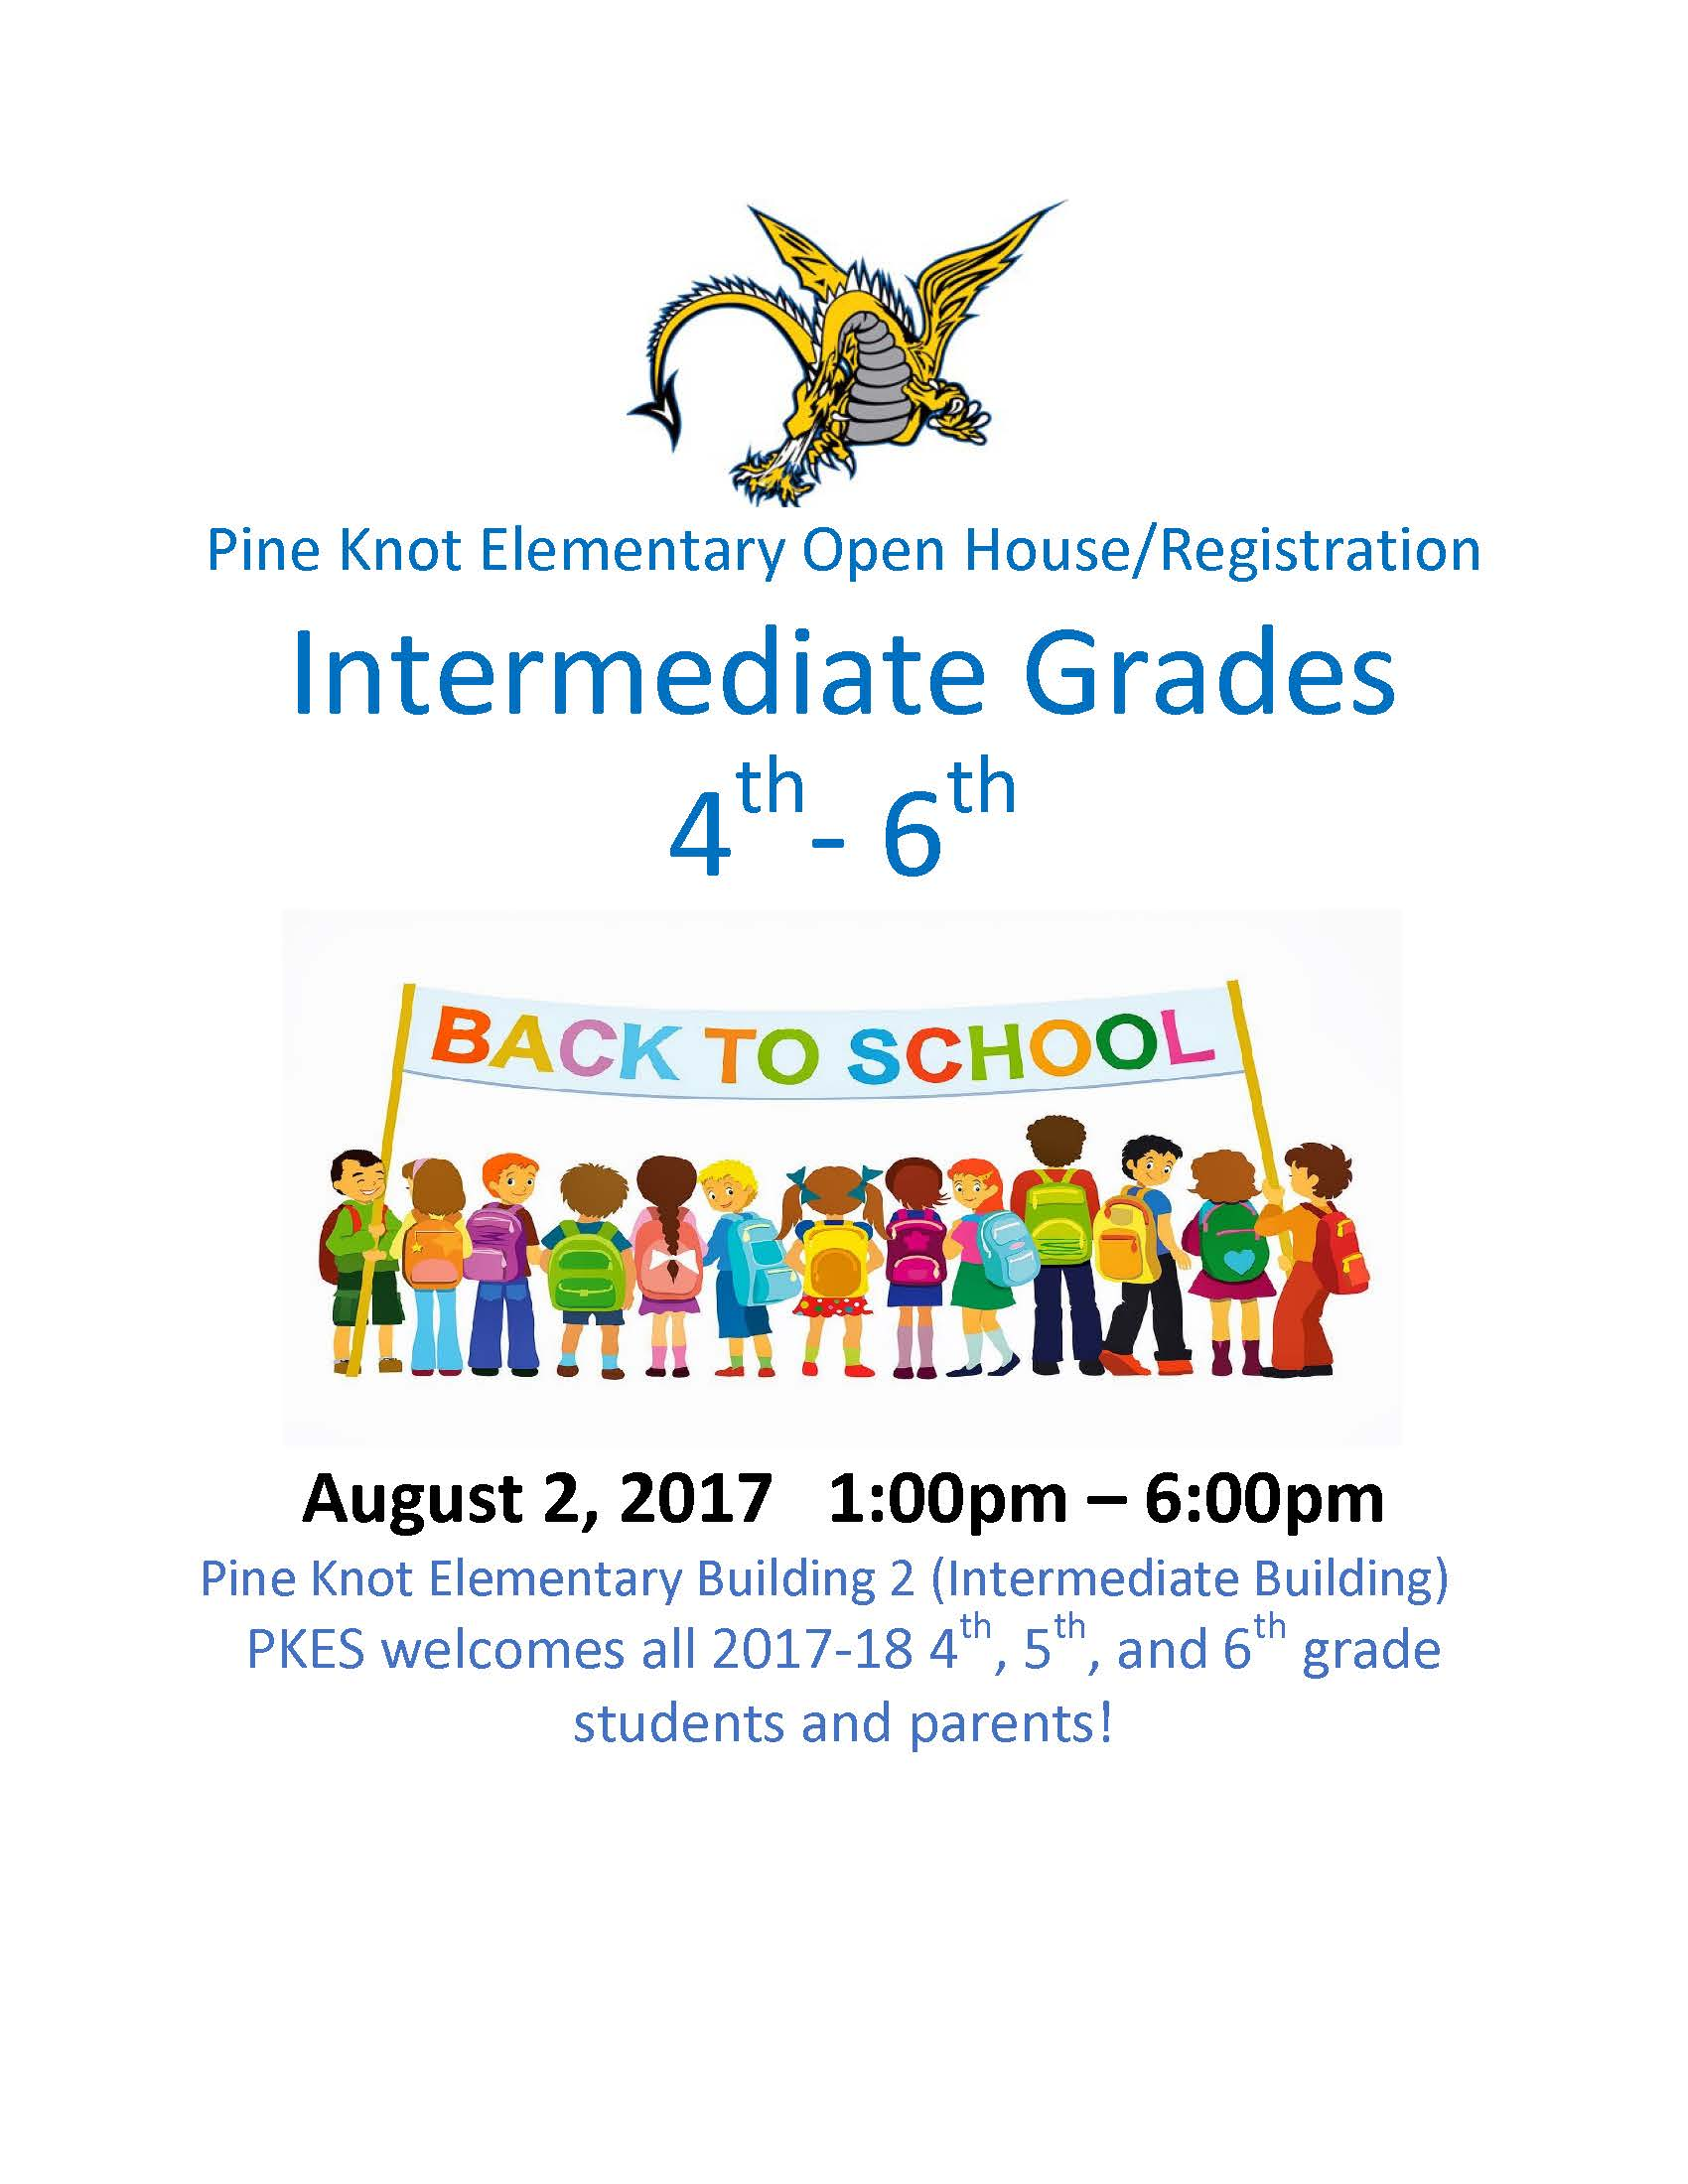 PKE Intermediate Grades Open House